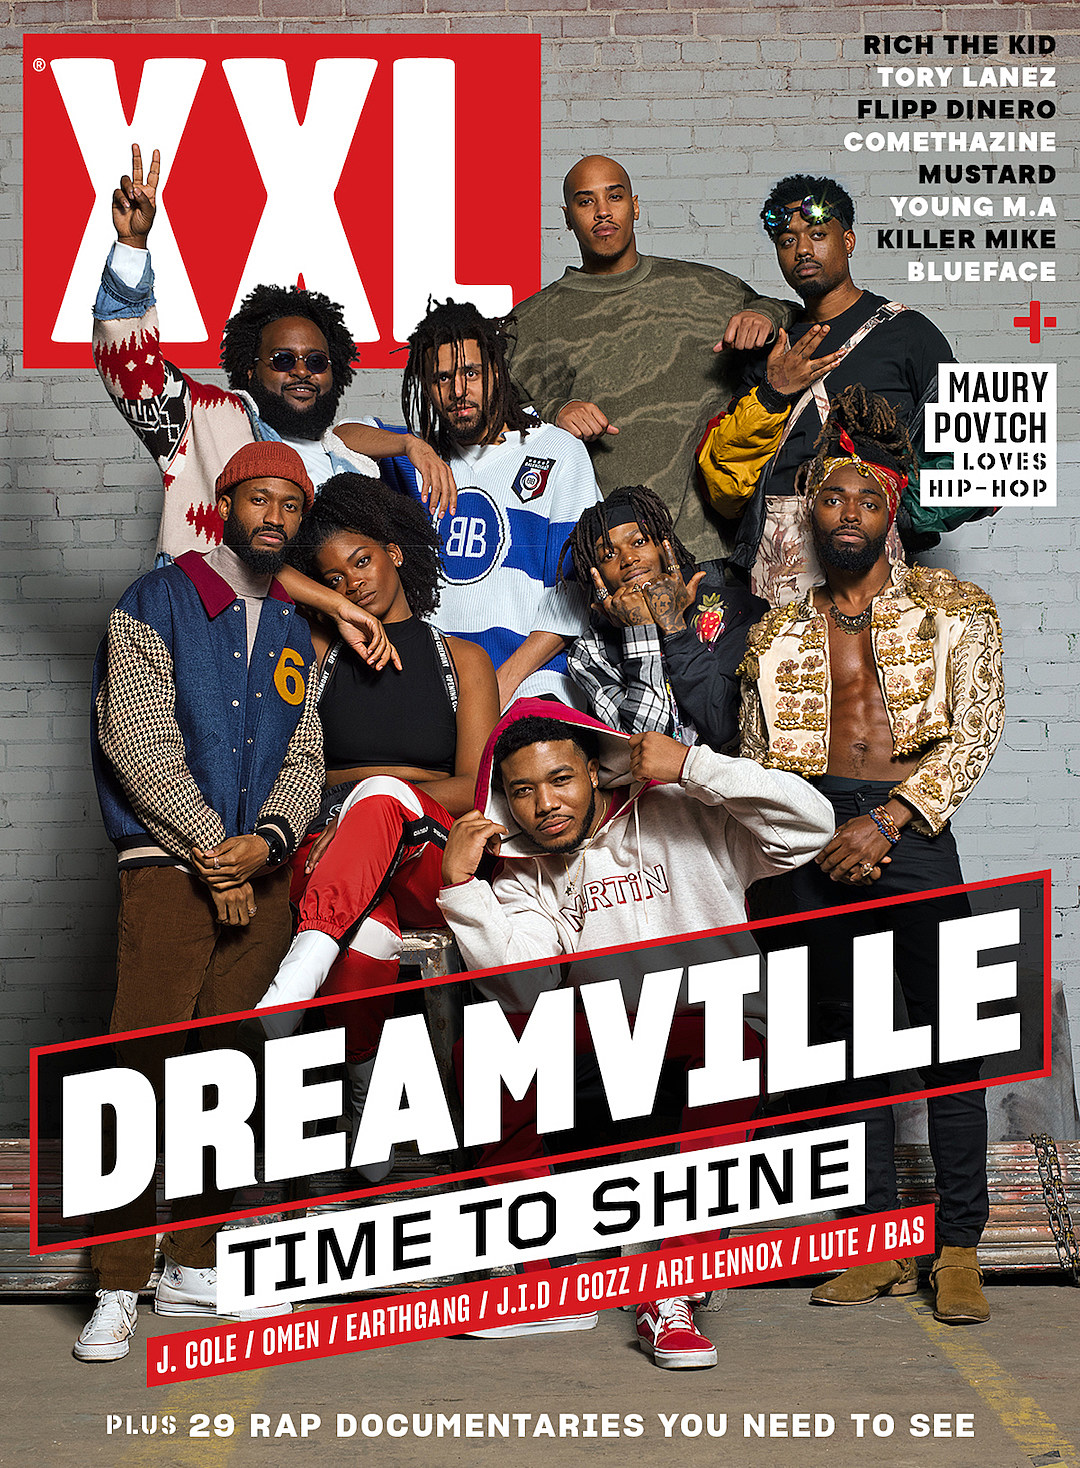 Dreamville Records on XXL